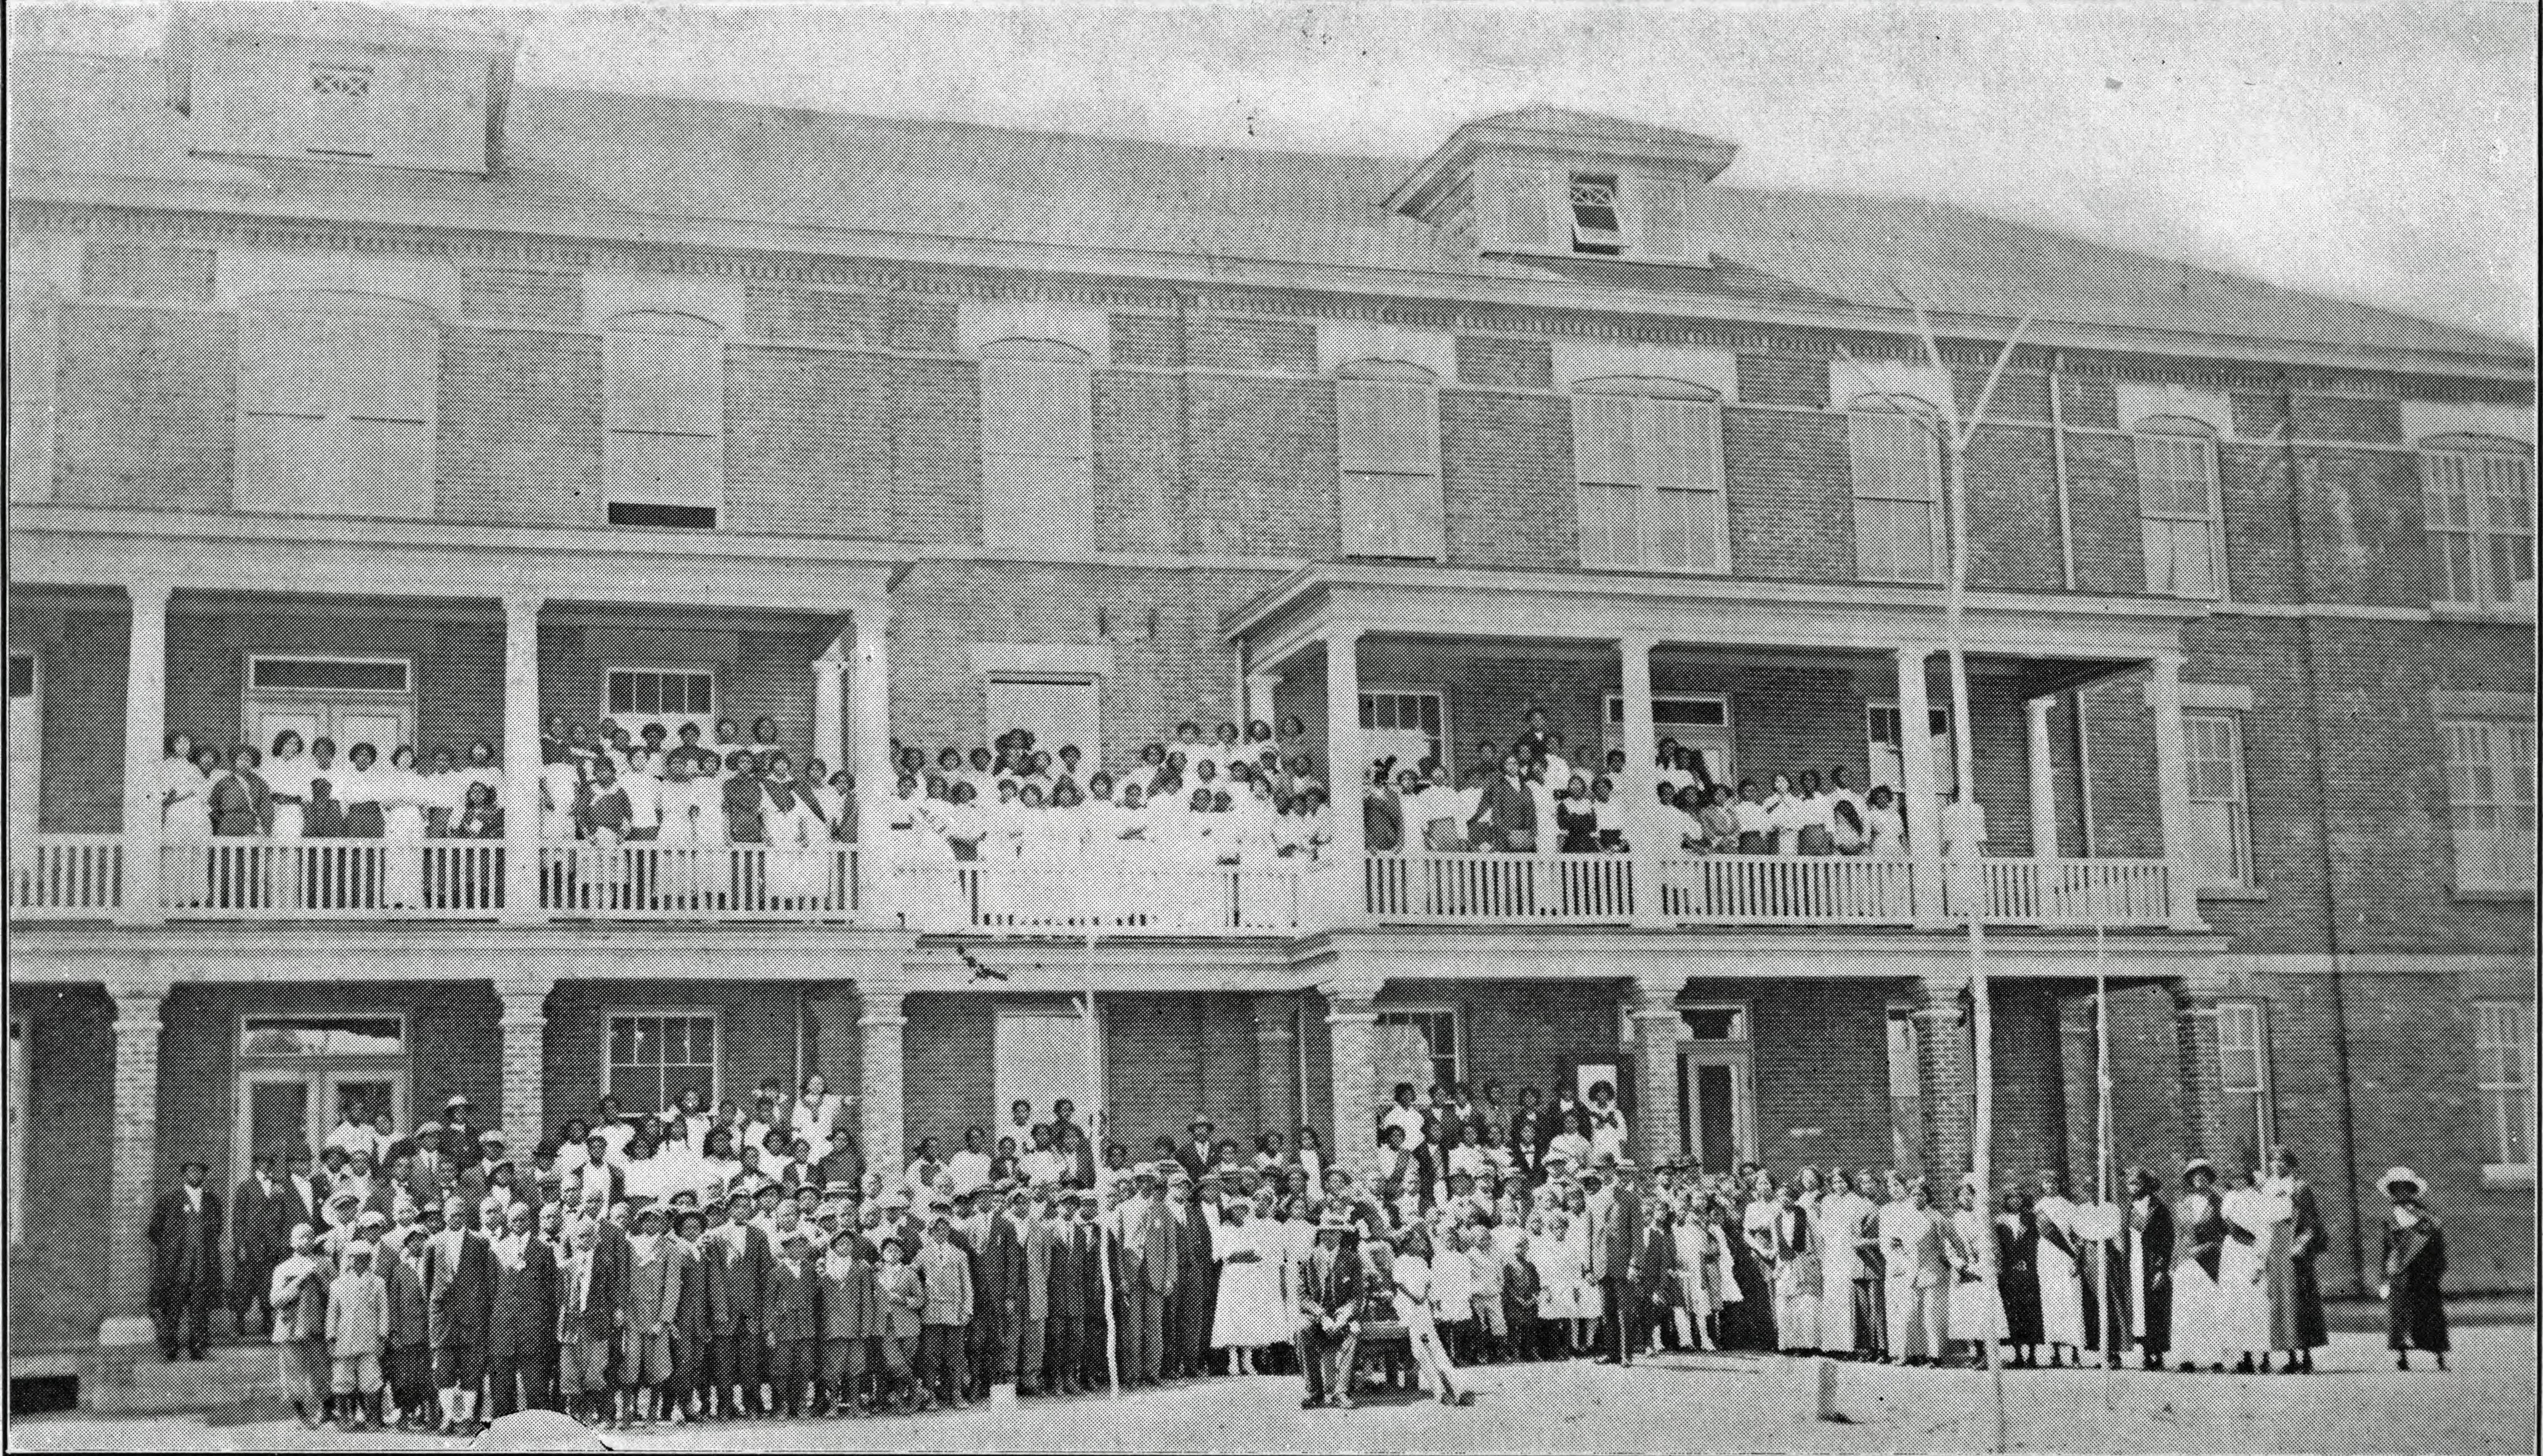 The student body of Elizabeth City State Colored Normal School, 1913-1914, Credit: ECSU Archives/Digital NC